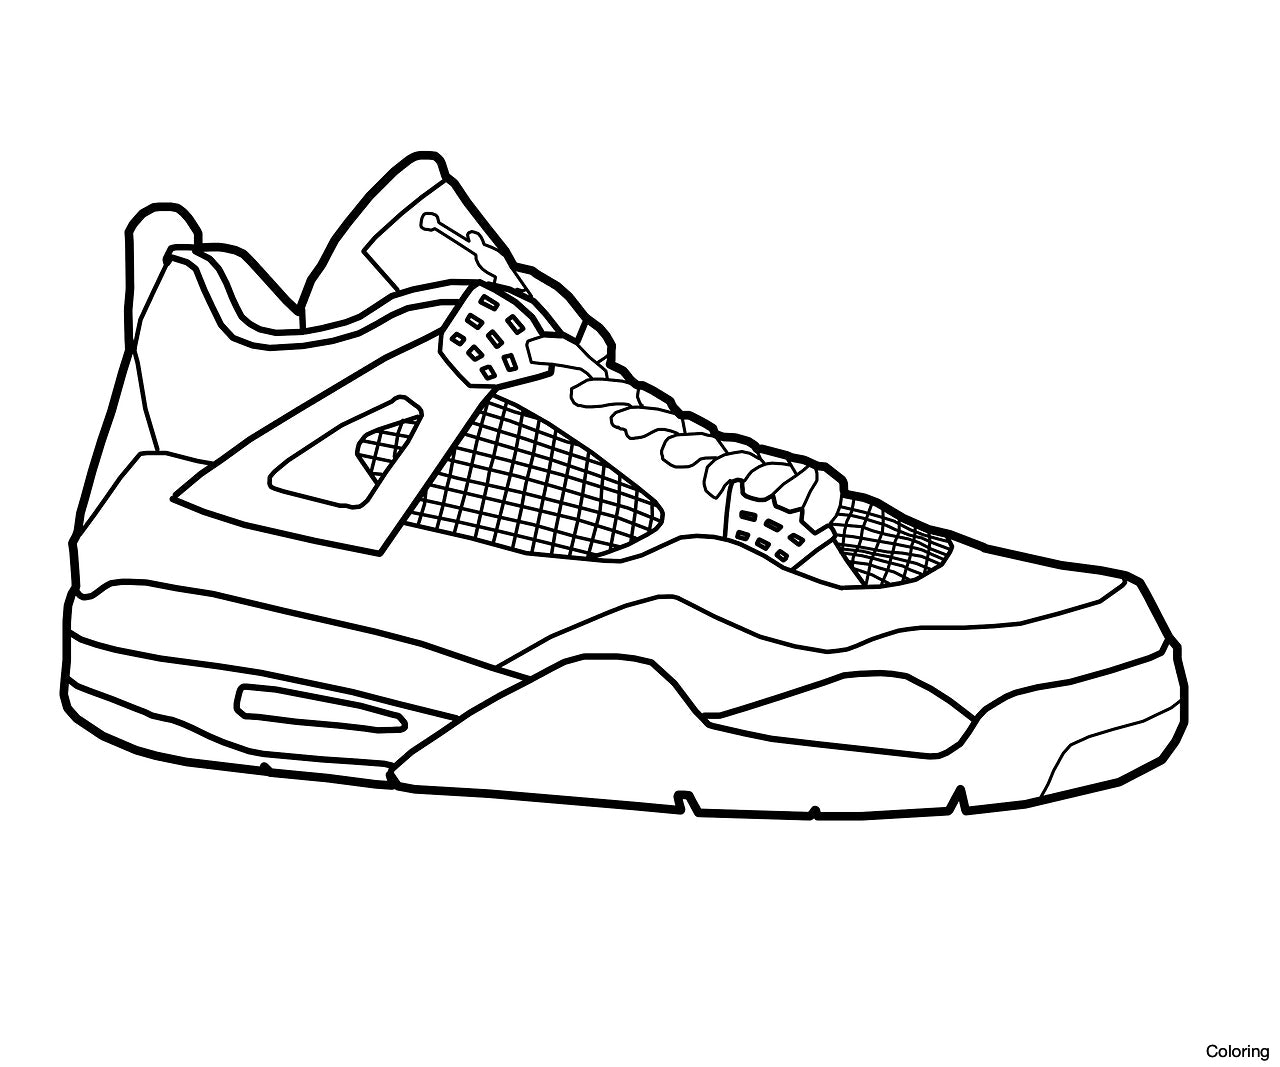 coloring nike shoes coloring pages of nike shoes Сoloring pages for all ages shoes coloring nike